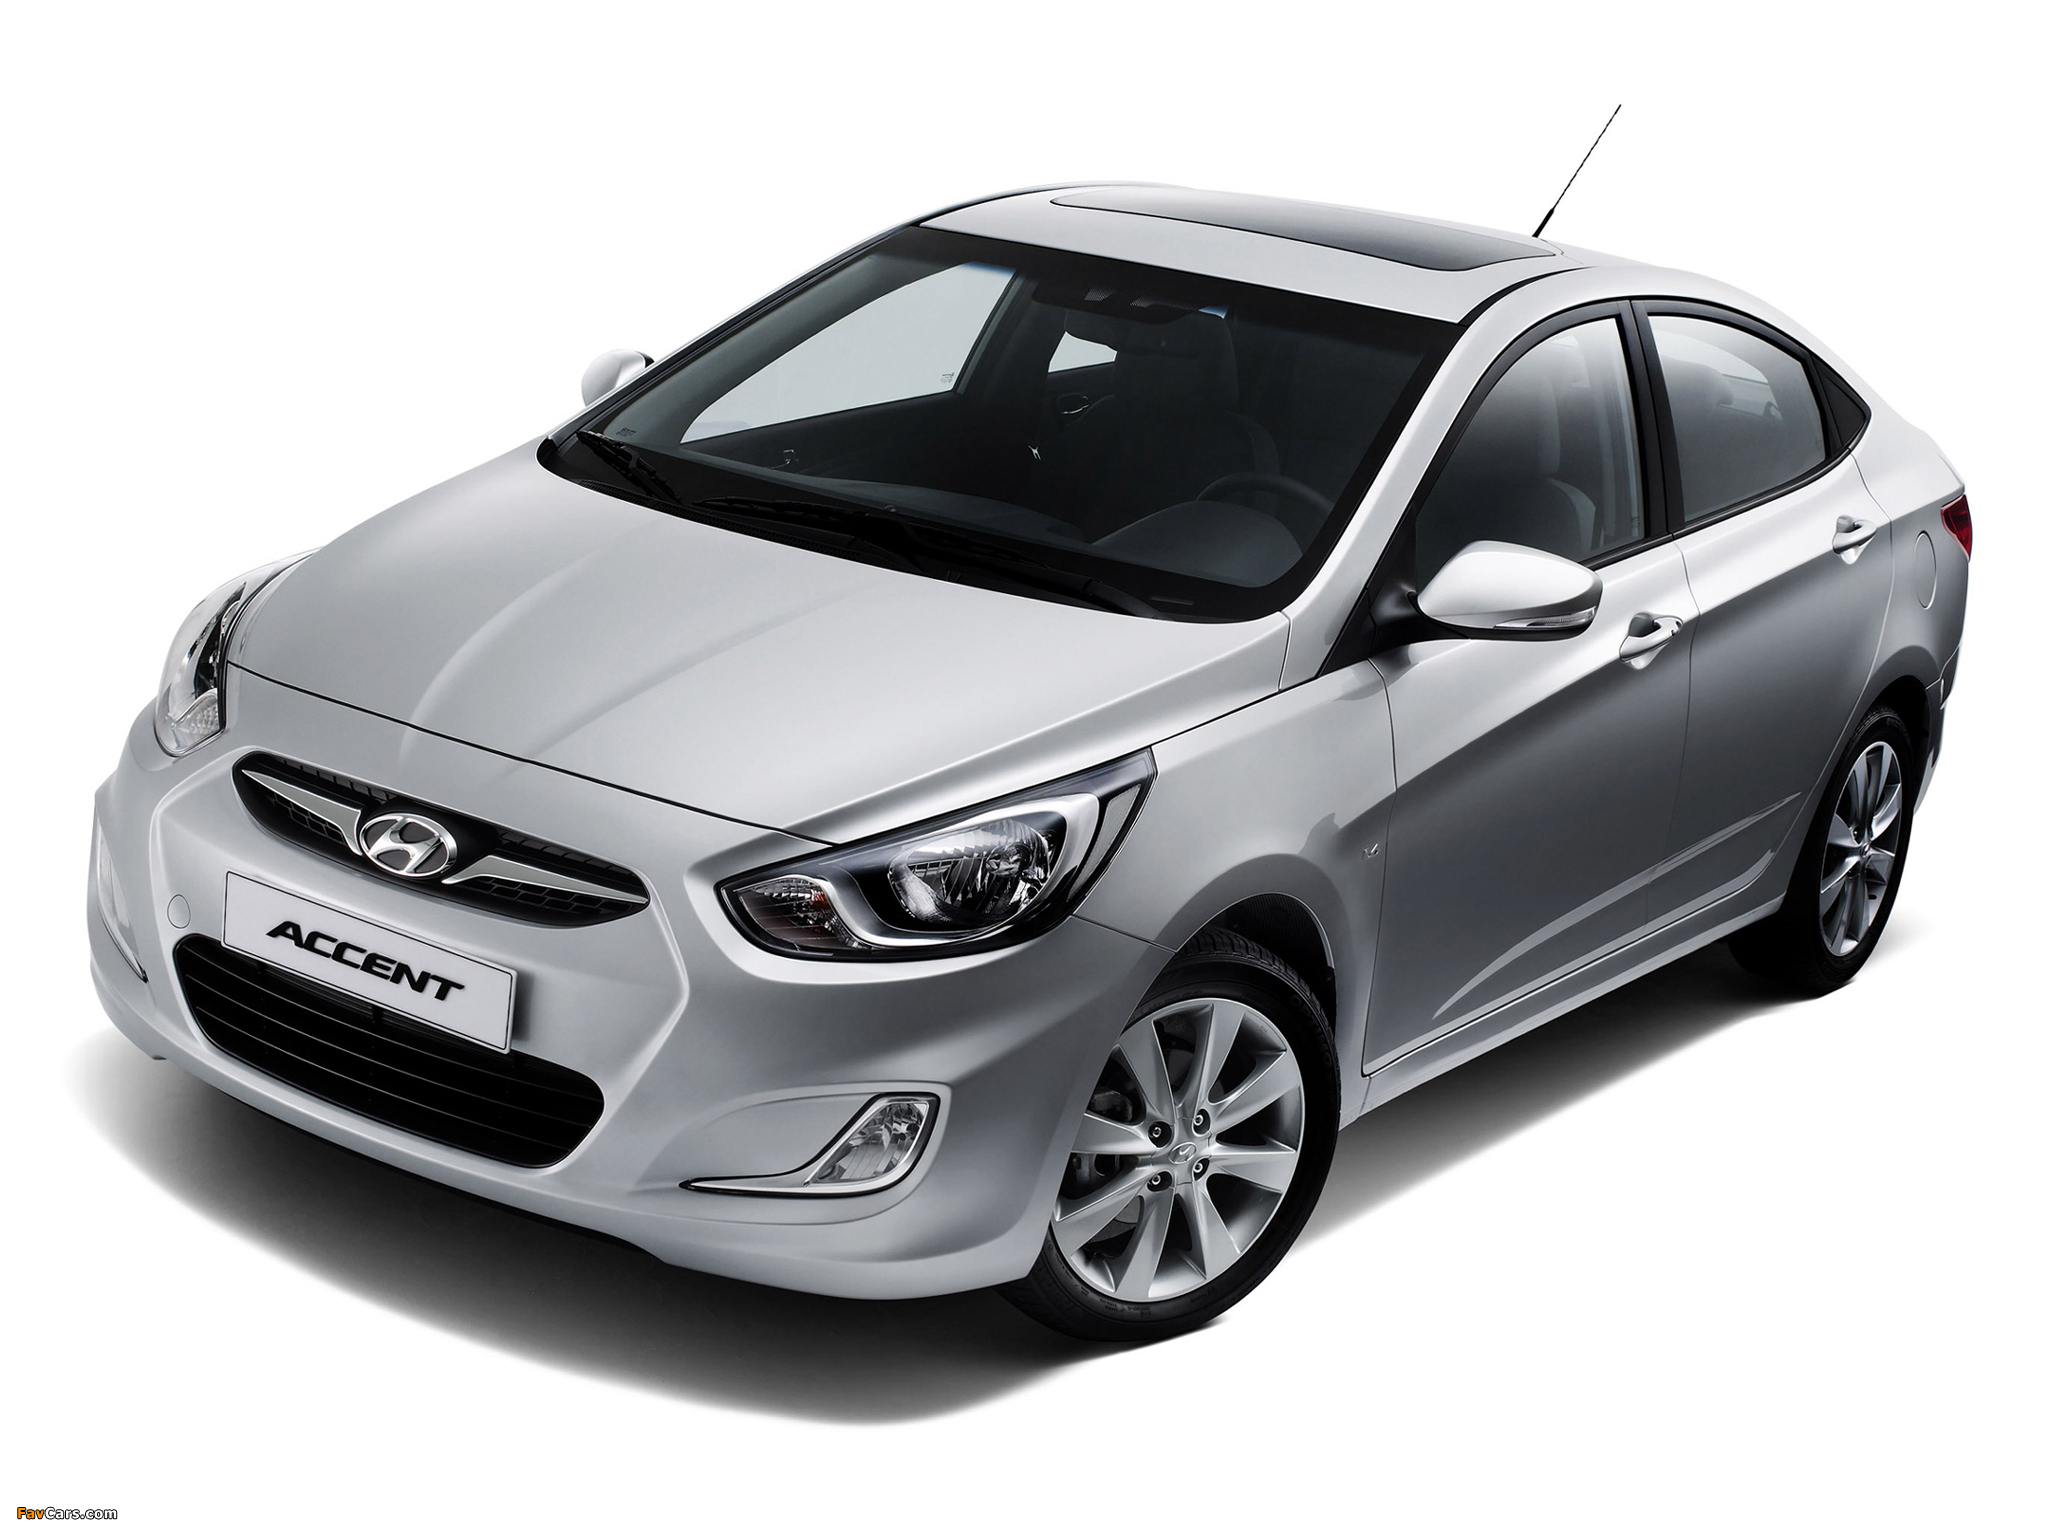 Hyundai Accent Rb 2010 Pictures 2048x1536